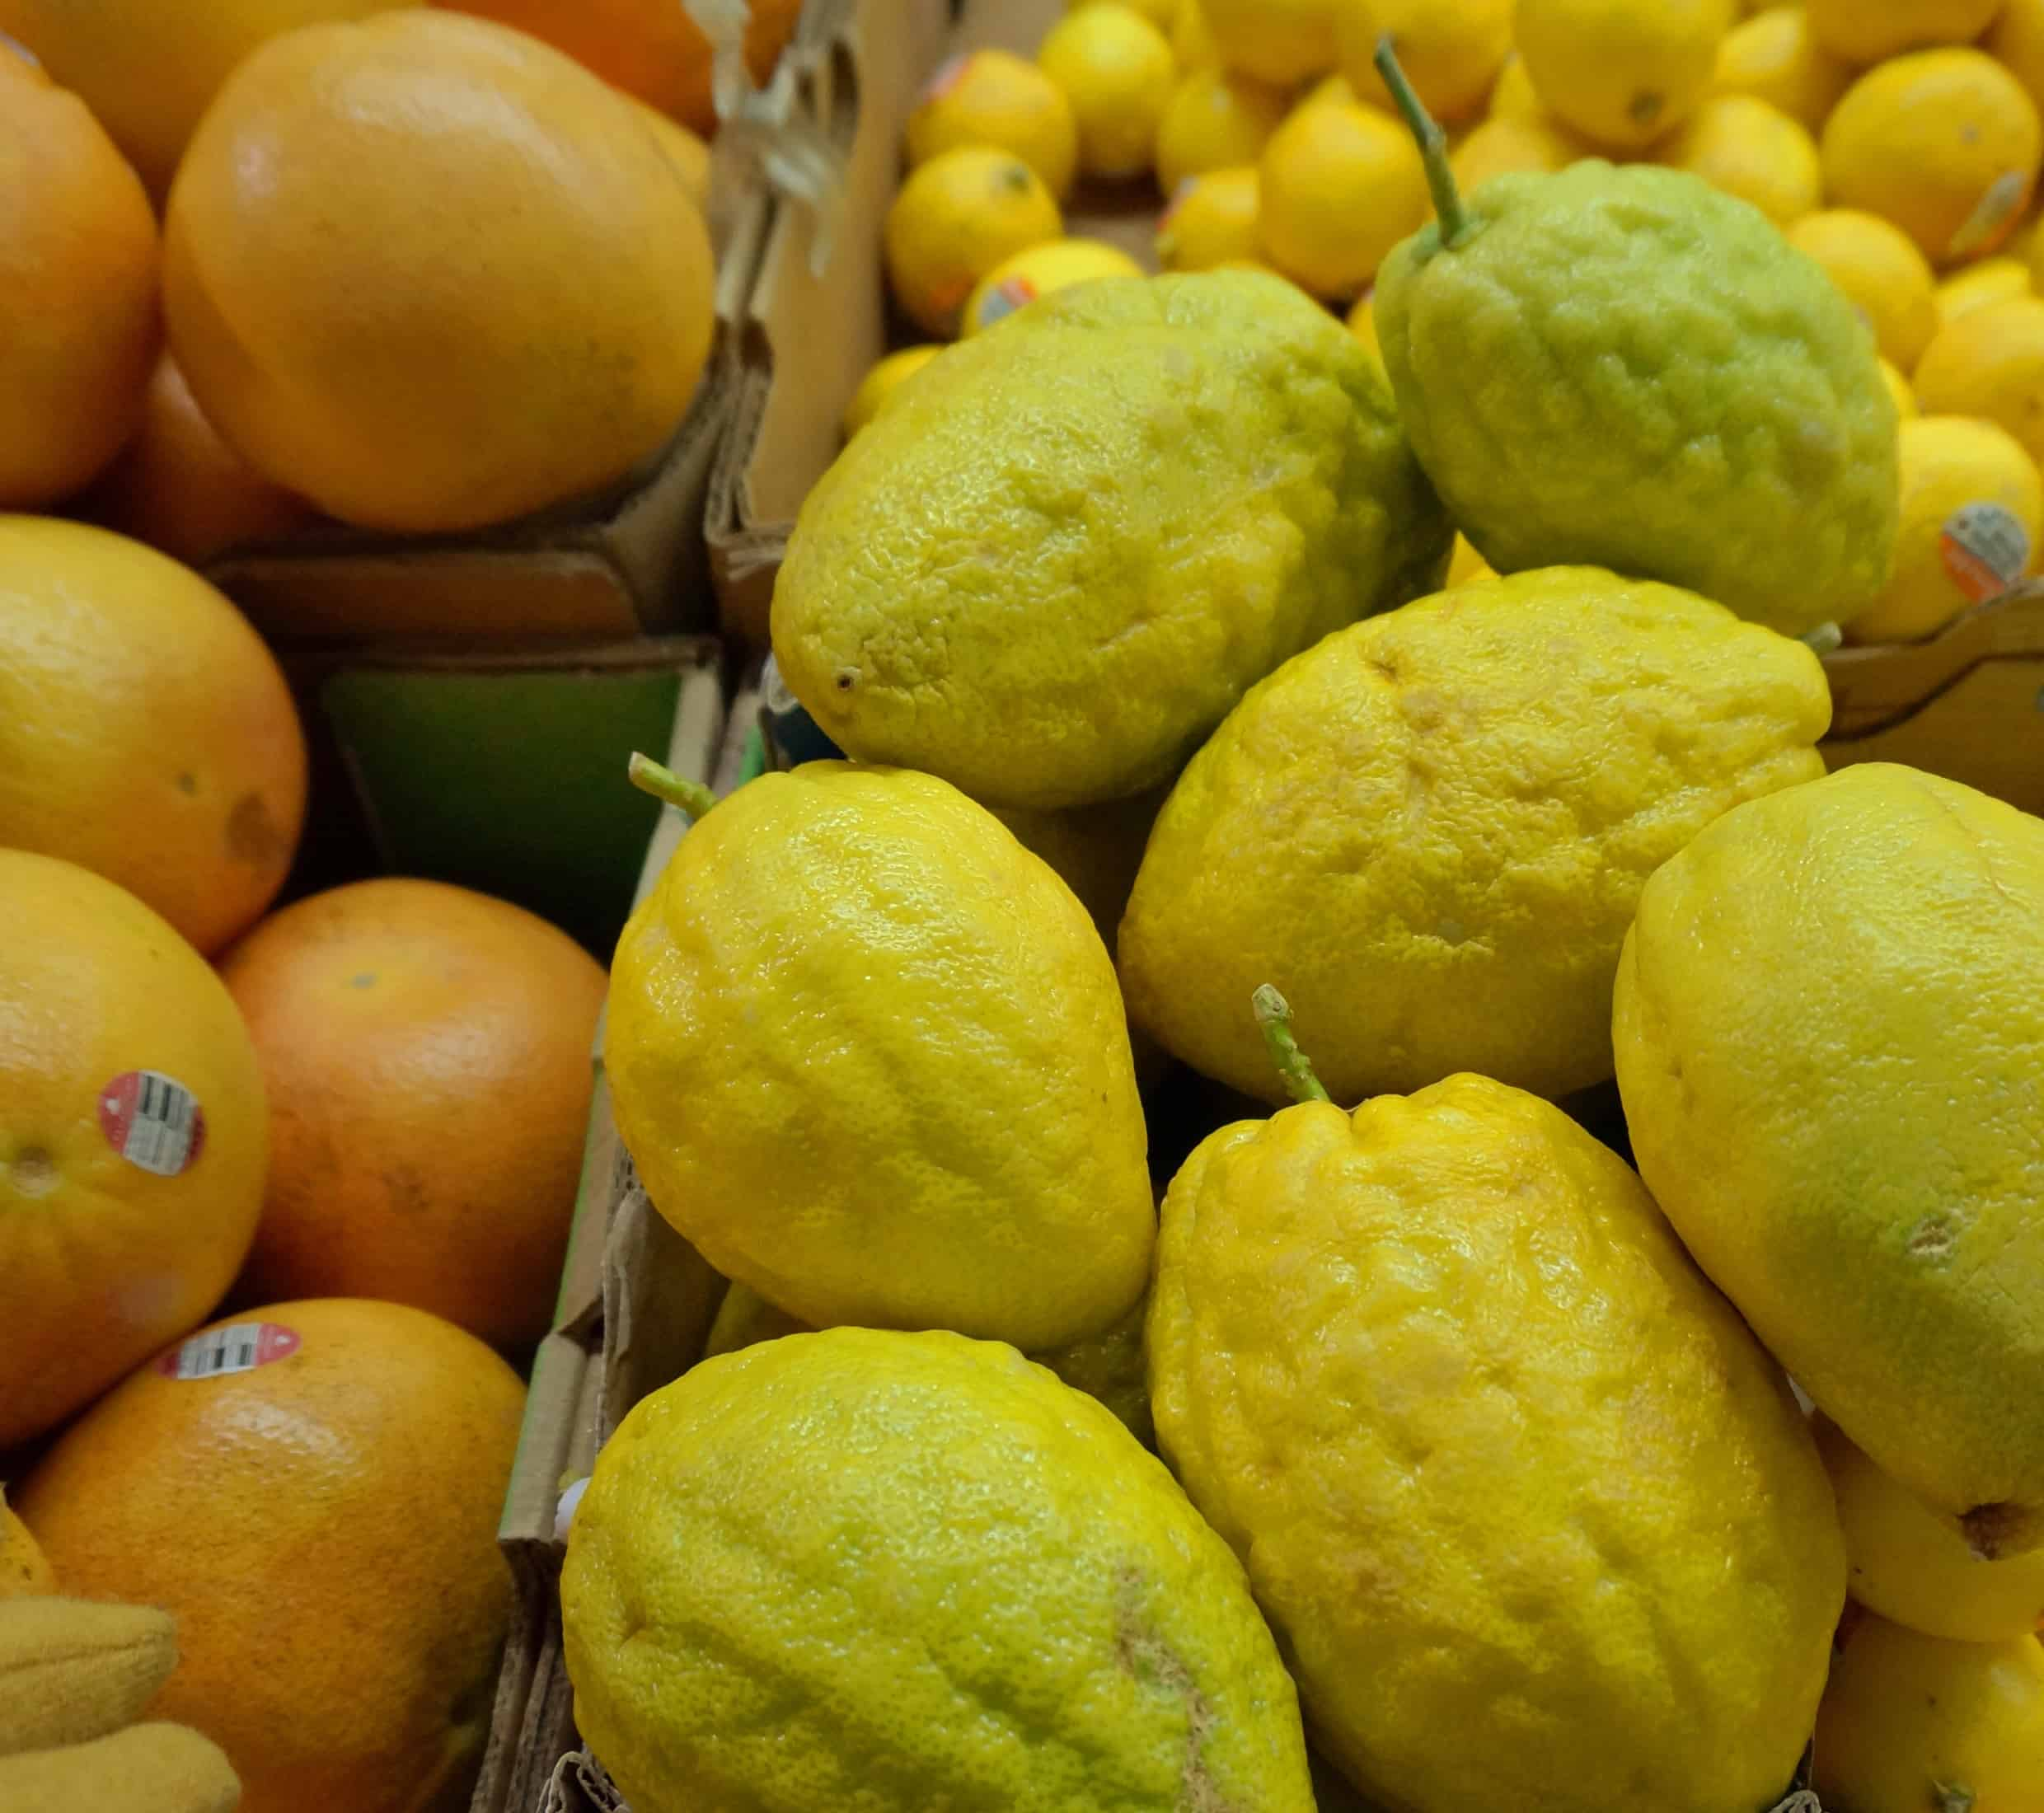 © 2015 Shelley S. Cramm Citrons, also known as Etrog, among the citrus for sale at Central Market in Southlake, Texas